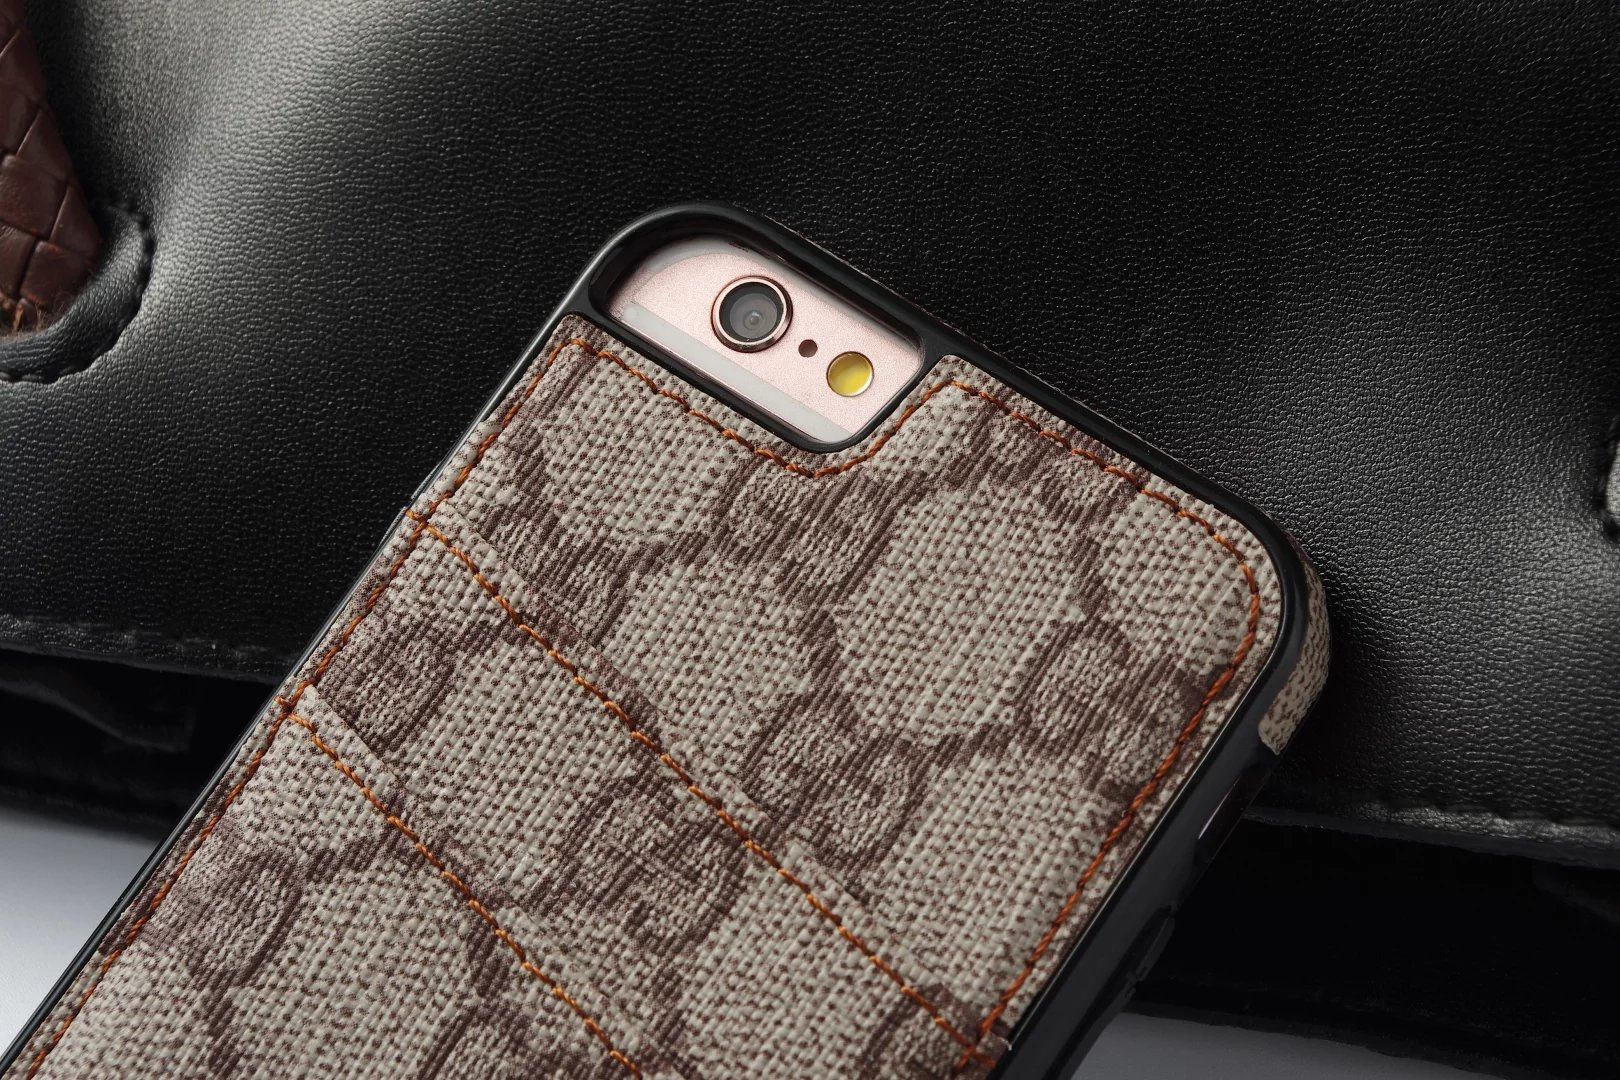 iphone 8 Plus case apple phone covers iphone 8 Plus Louis Vuitton iphone 8 Plus case mophie iPhone 8 Plus case review branded iphone covers apple iPhone 8 Plus covers iphone 8 Plus protective case iPhone 8 Plus cases wallet designer iphone case brands